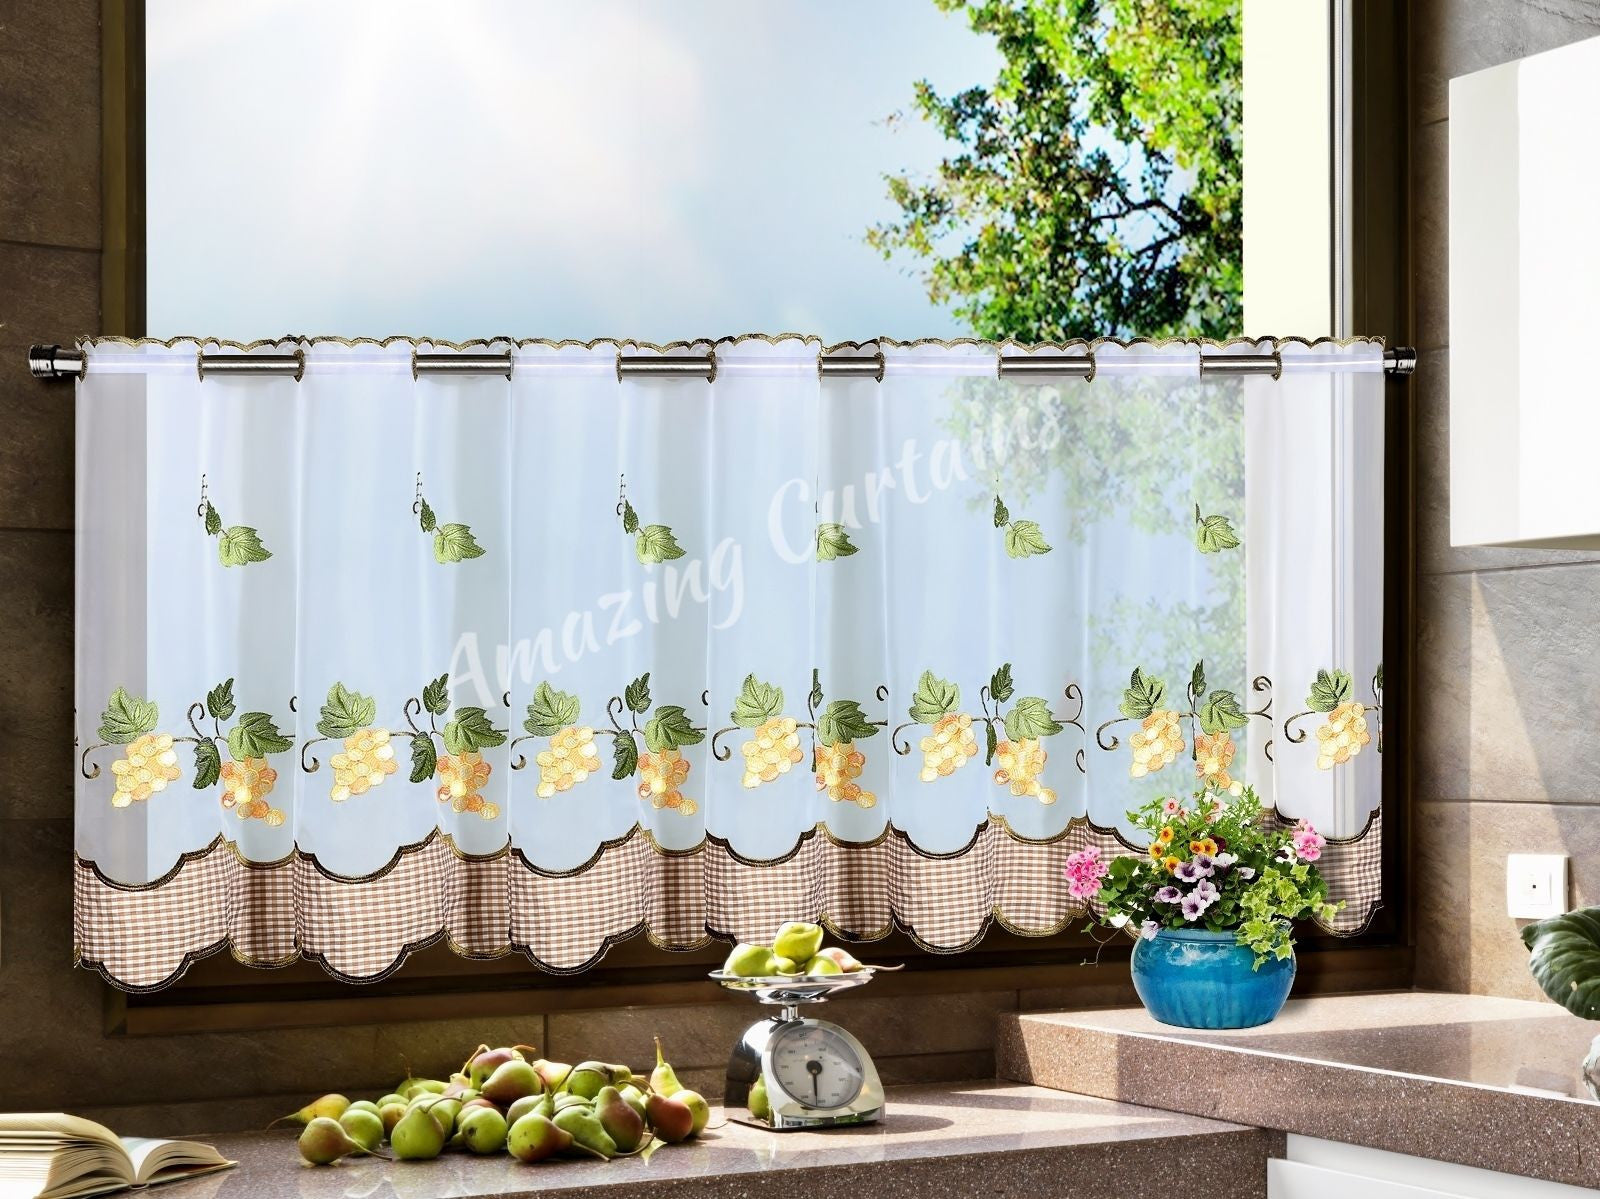 Kitchen cafe curtain patterns - Kitchen Cafe Curtain With Grapes Pattern Amazingcurtains